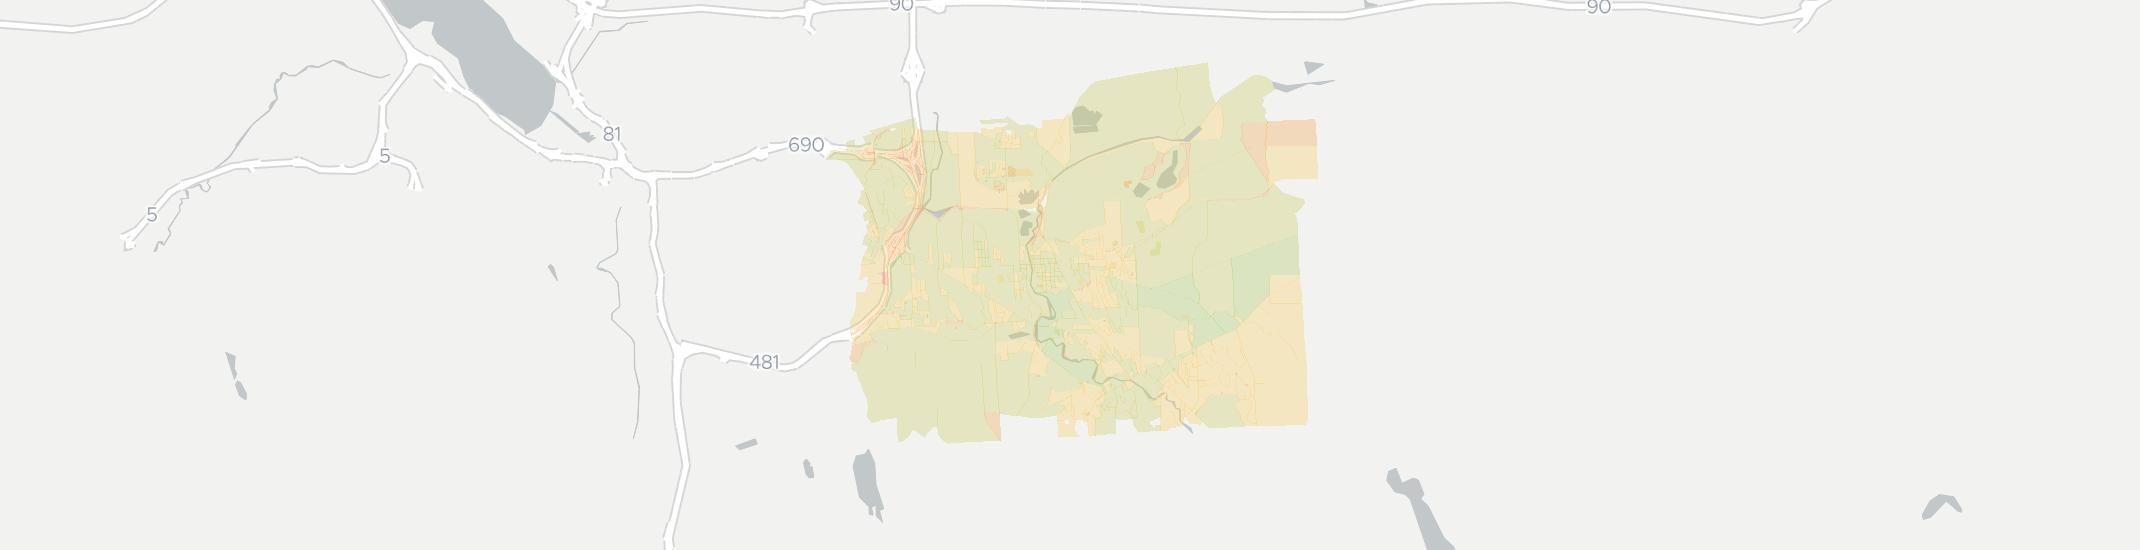 Fayetteville Internet Competition Map. Click for interactive map.